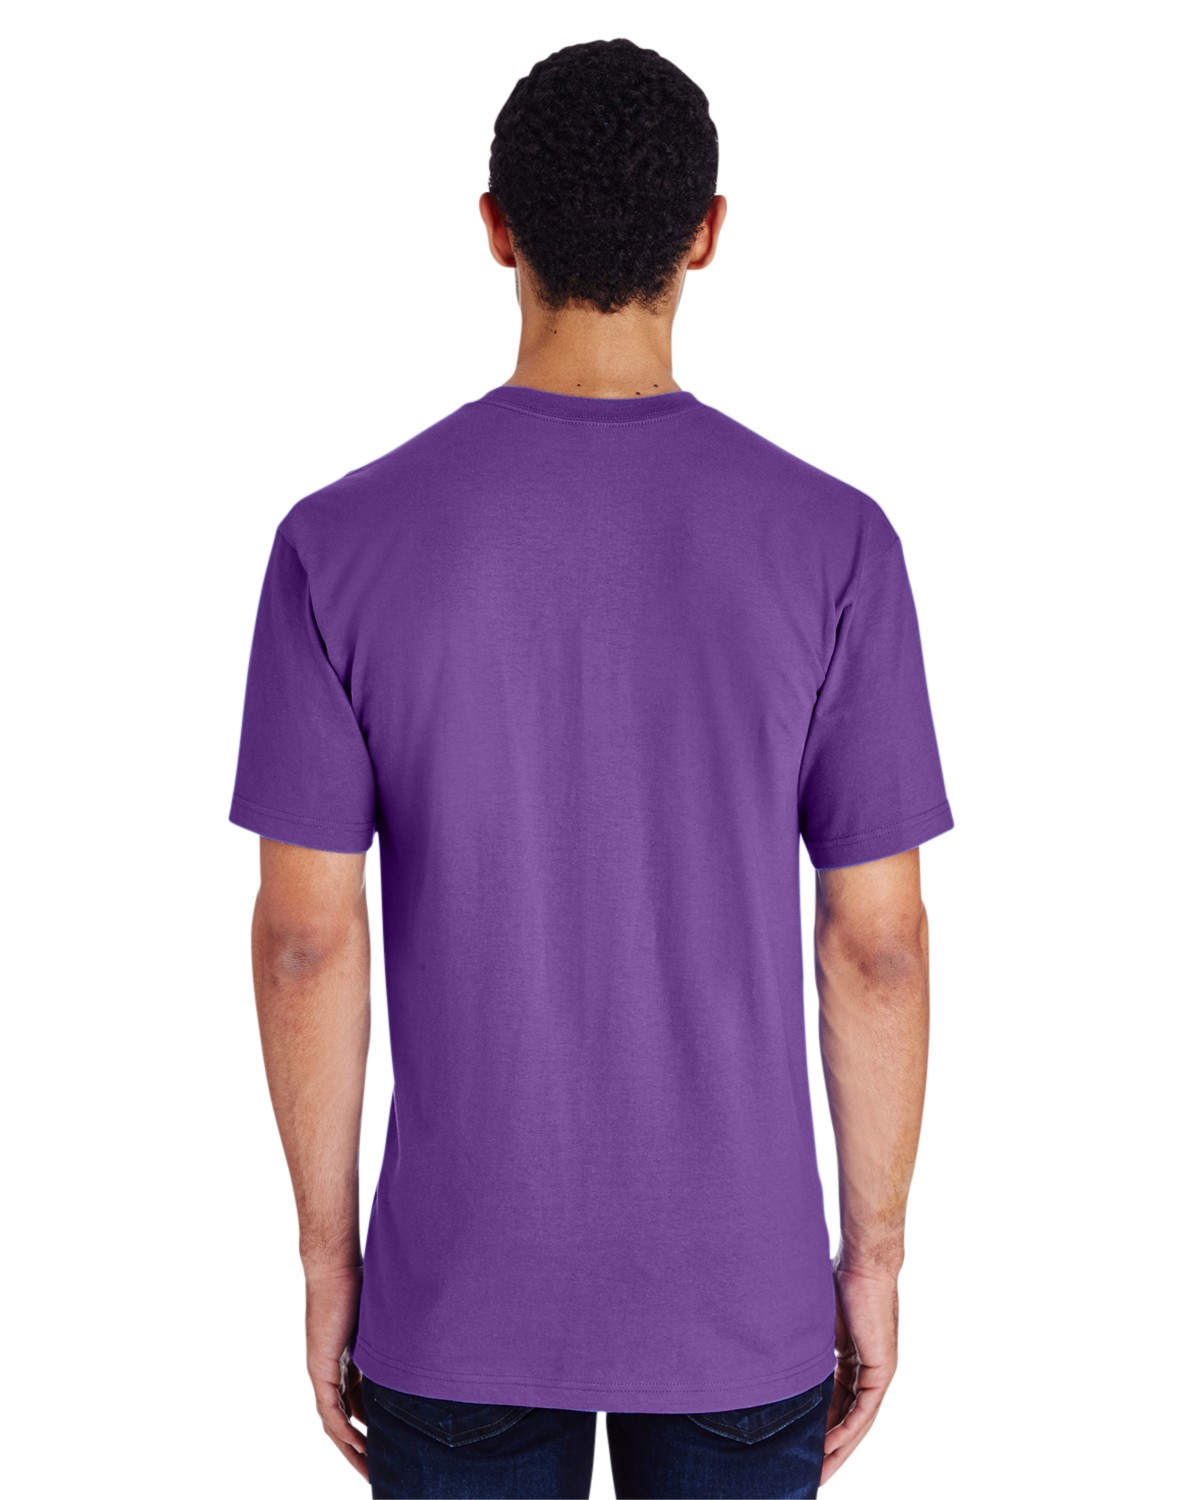 H000 Gildan SPORT PURPLE